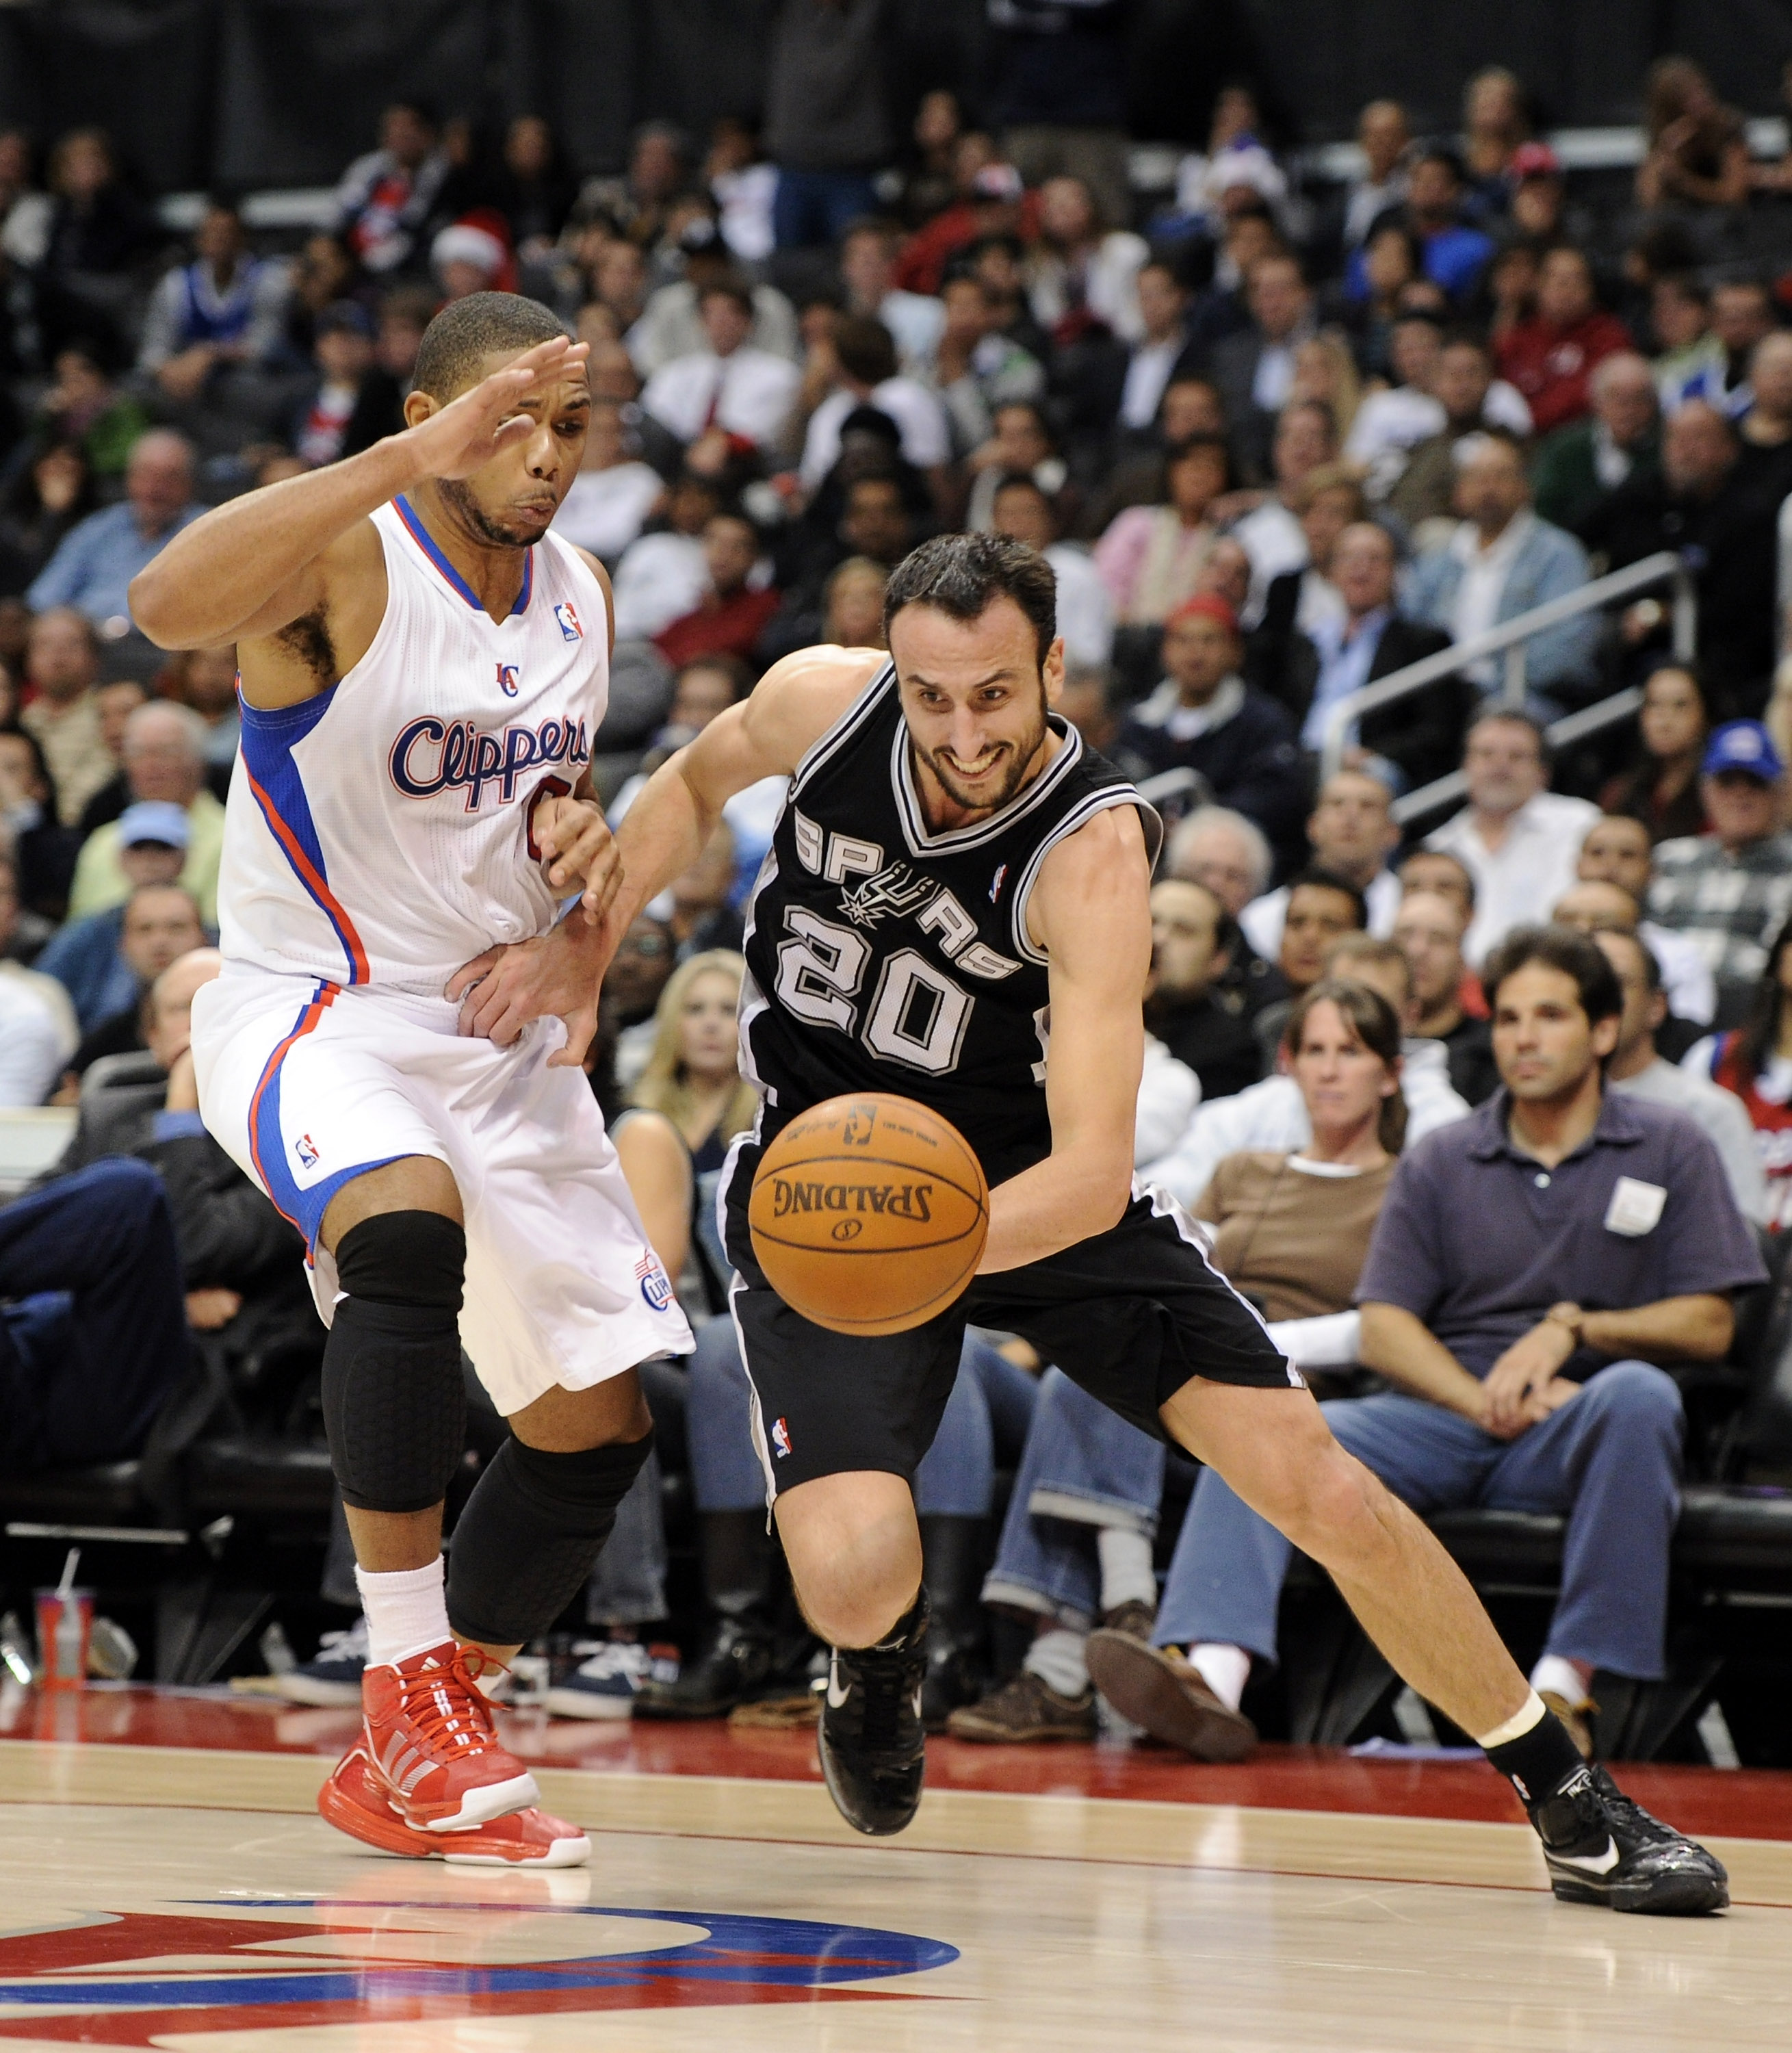 LOS ANGELES, CA - DECEMBER 01:  Manu Ginobili #20 of the San Antonio Spurs drives dribbles around Eric Gordon #10 of the Los Angeles Clippers during the game at the Staples Center on December 1, 2010 in Los Angeles, California.  NOTE TO USER: User express